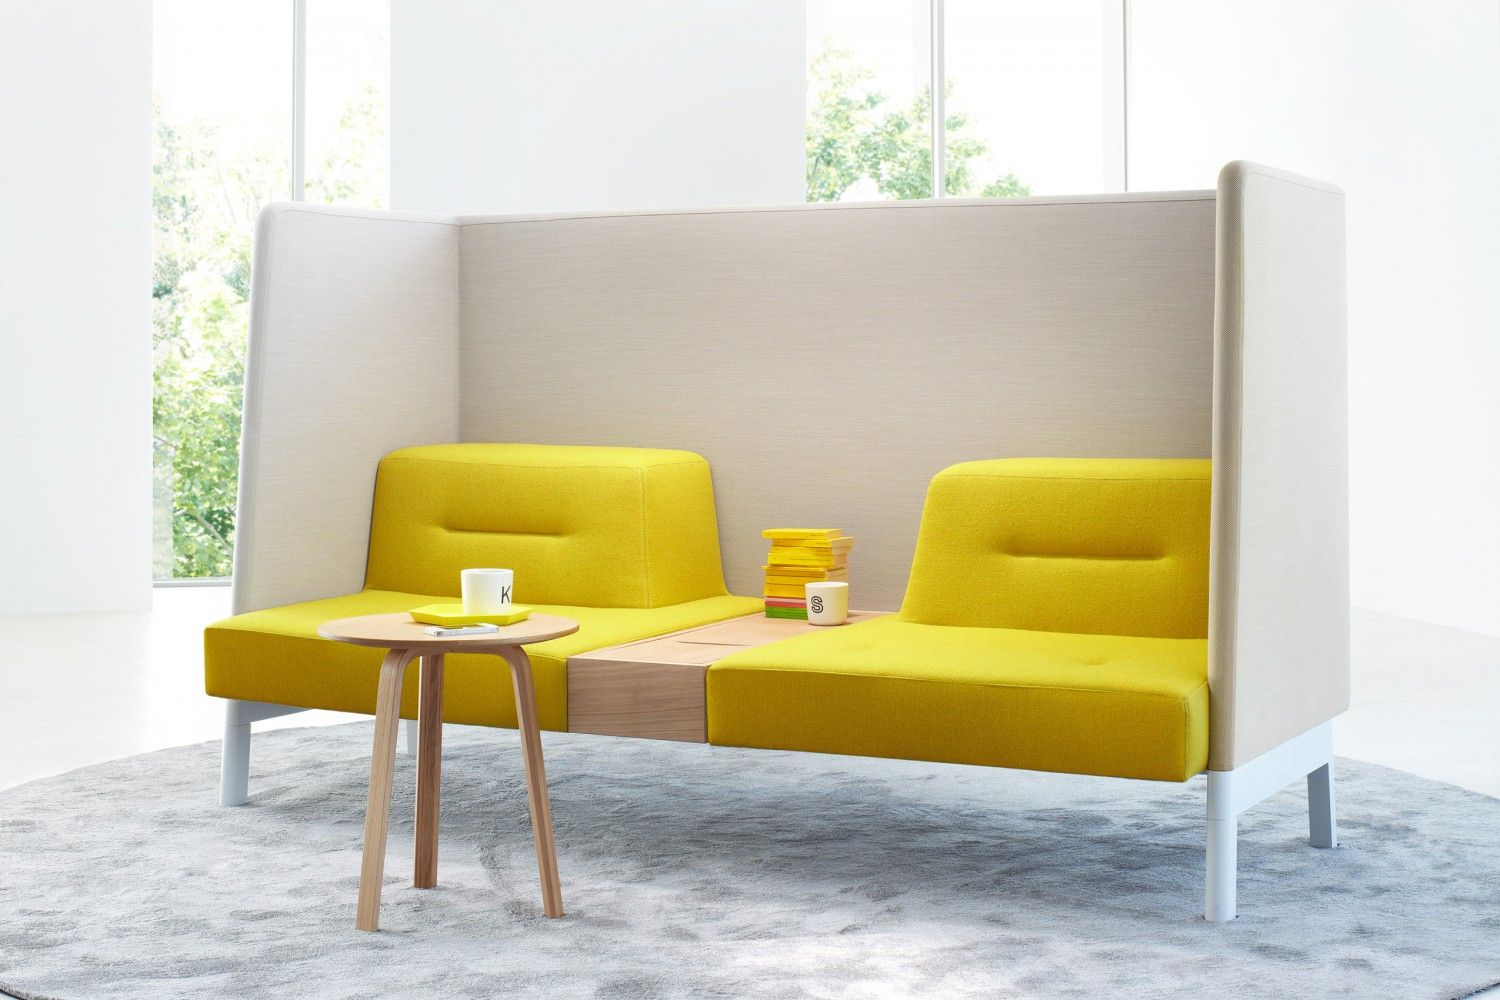 BJÖRN MEIER | Product Design Studio Berlin | Sofa | Pinterest ...